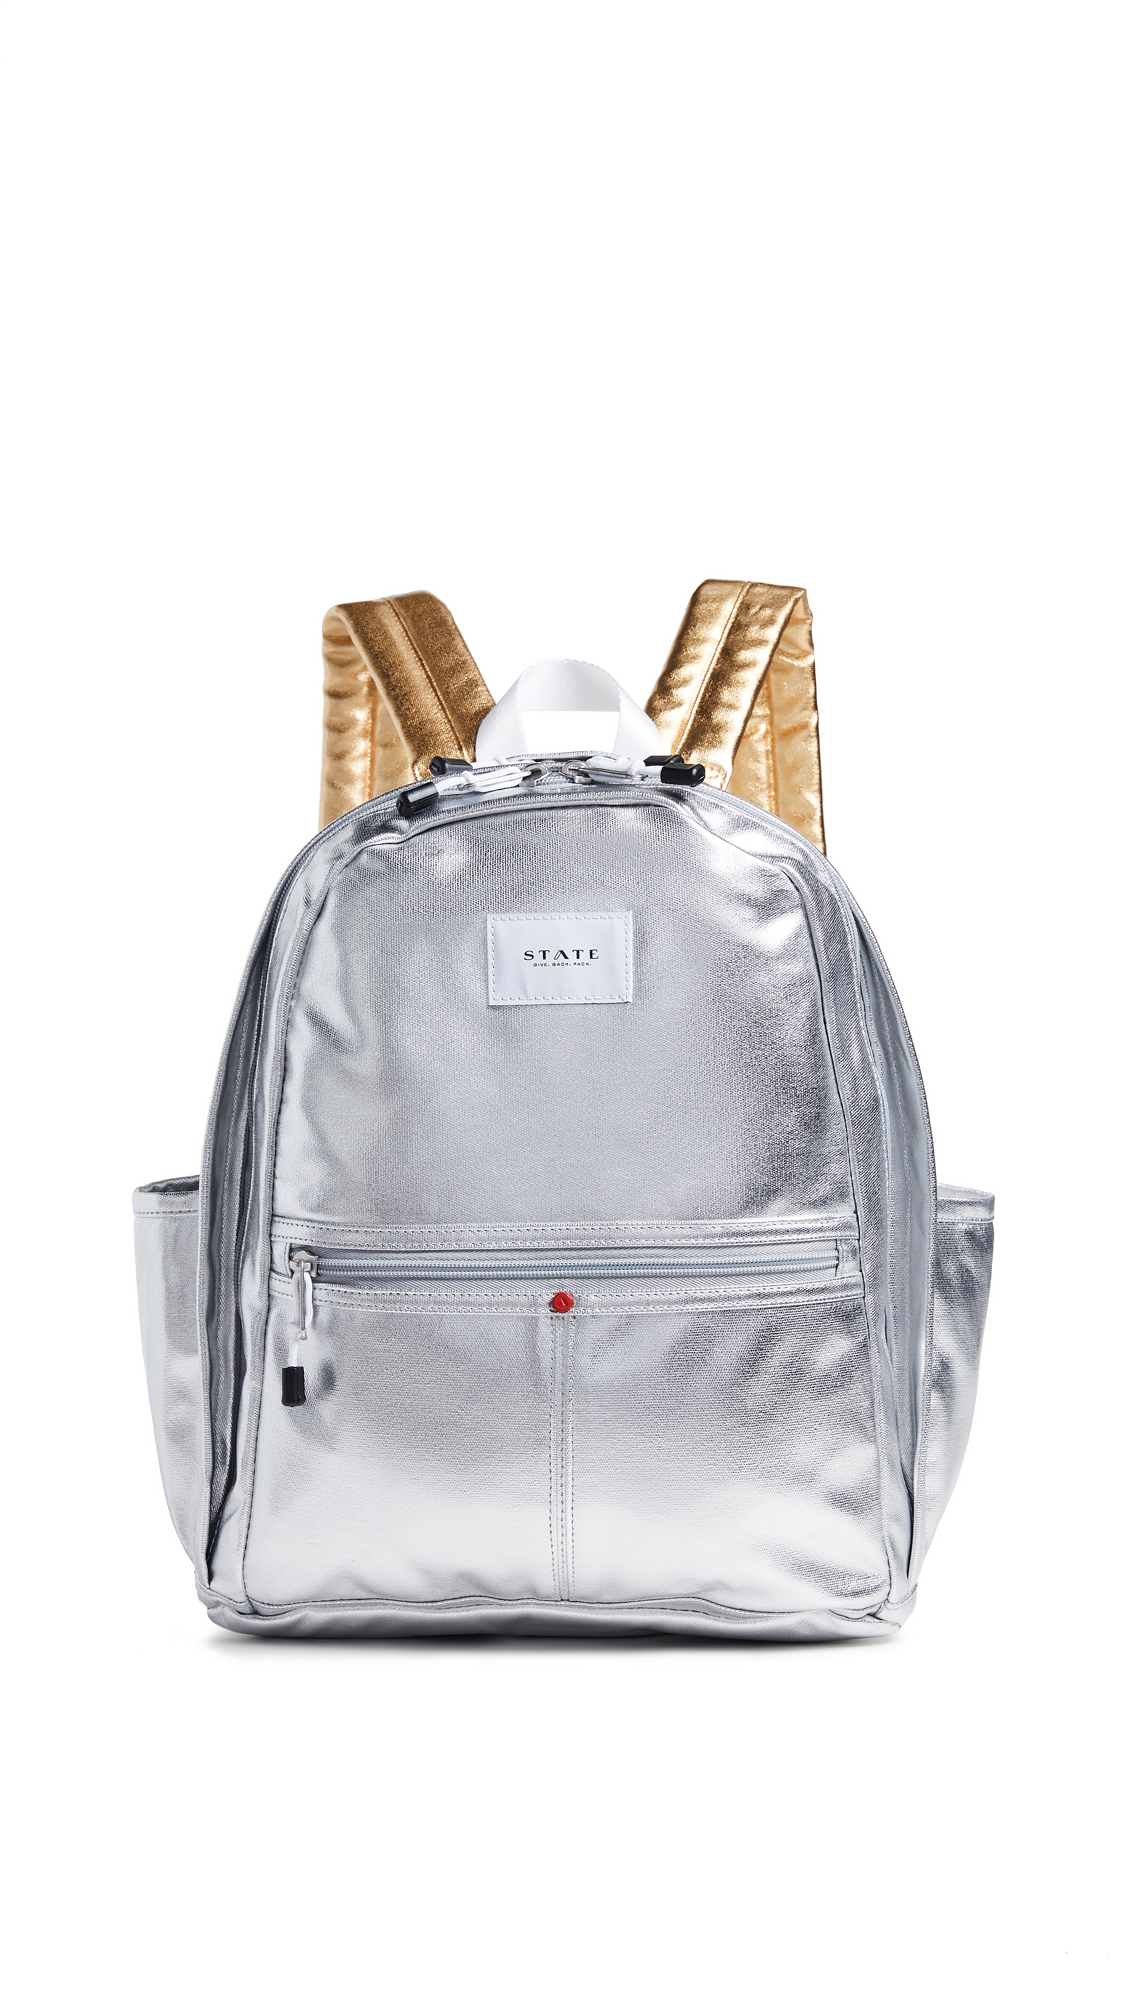 Kent Backpack in Silver/Gold